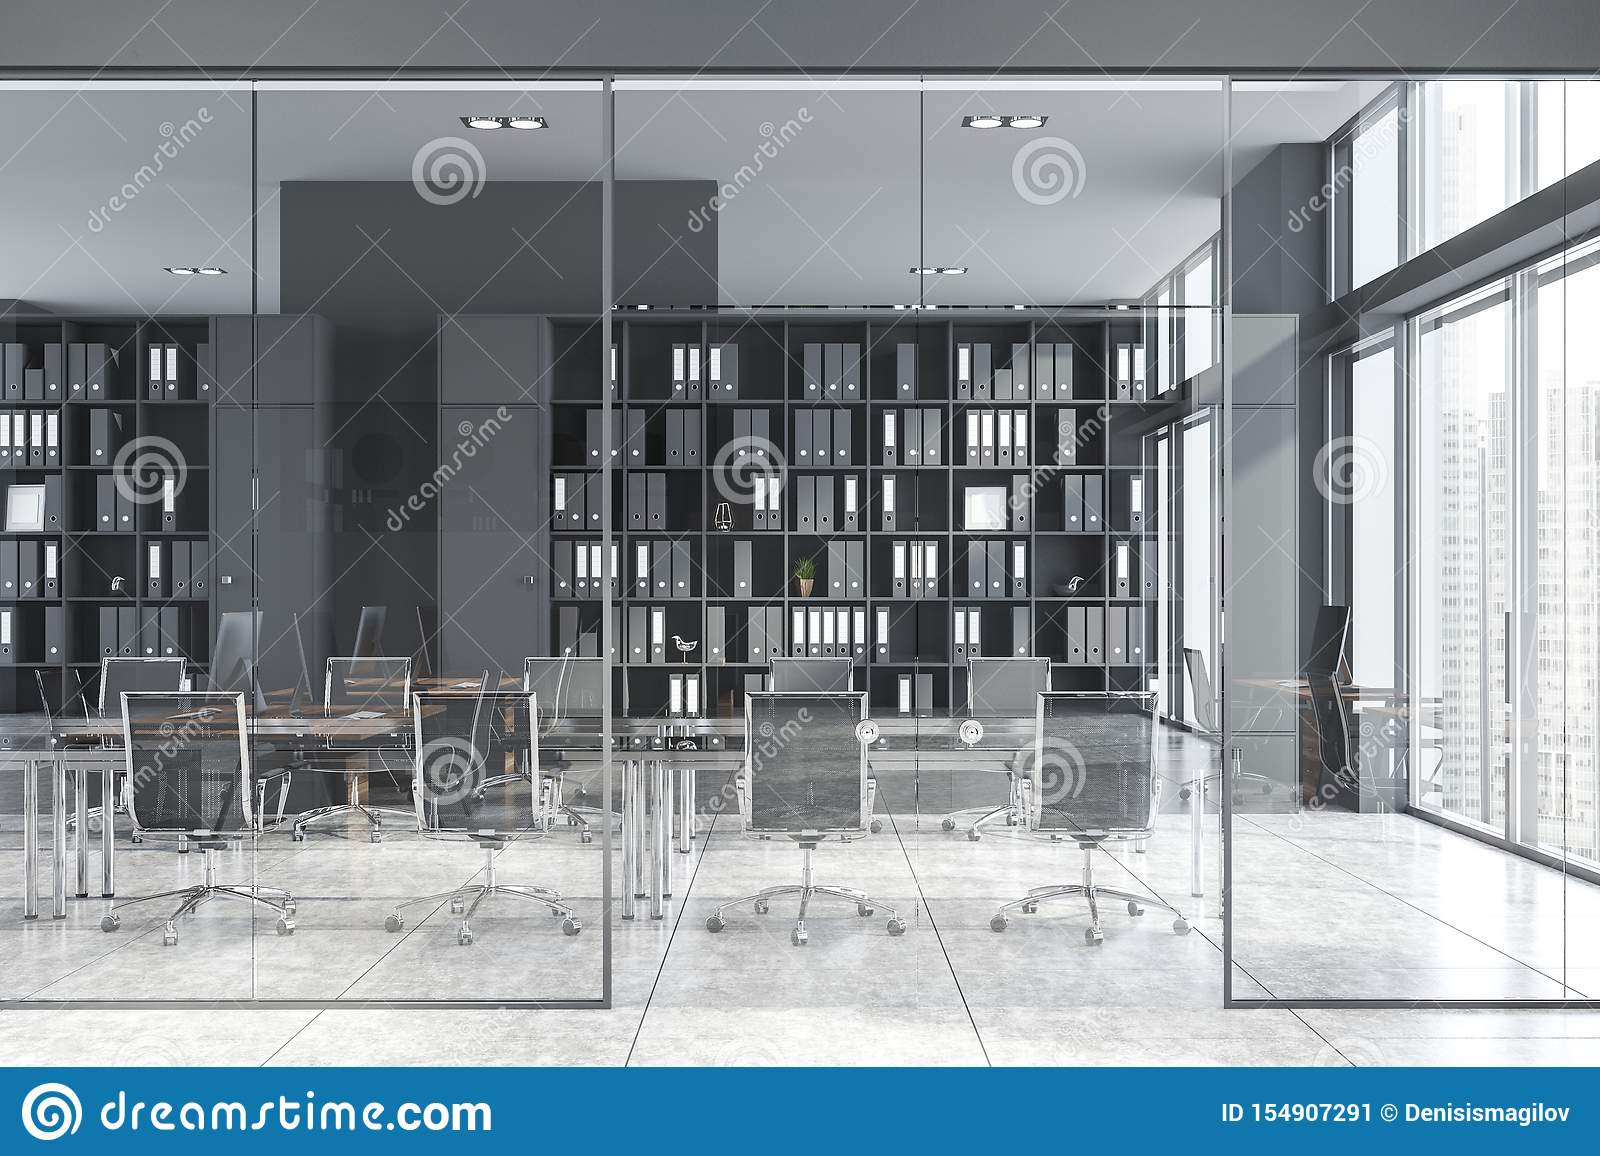 Gray Conference Room Interior With Glass Doors Stock Illustration Illustration Of Communication Management 154907291